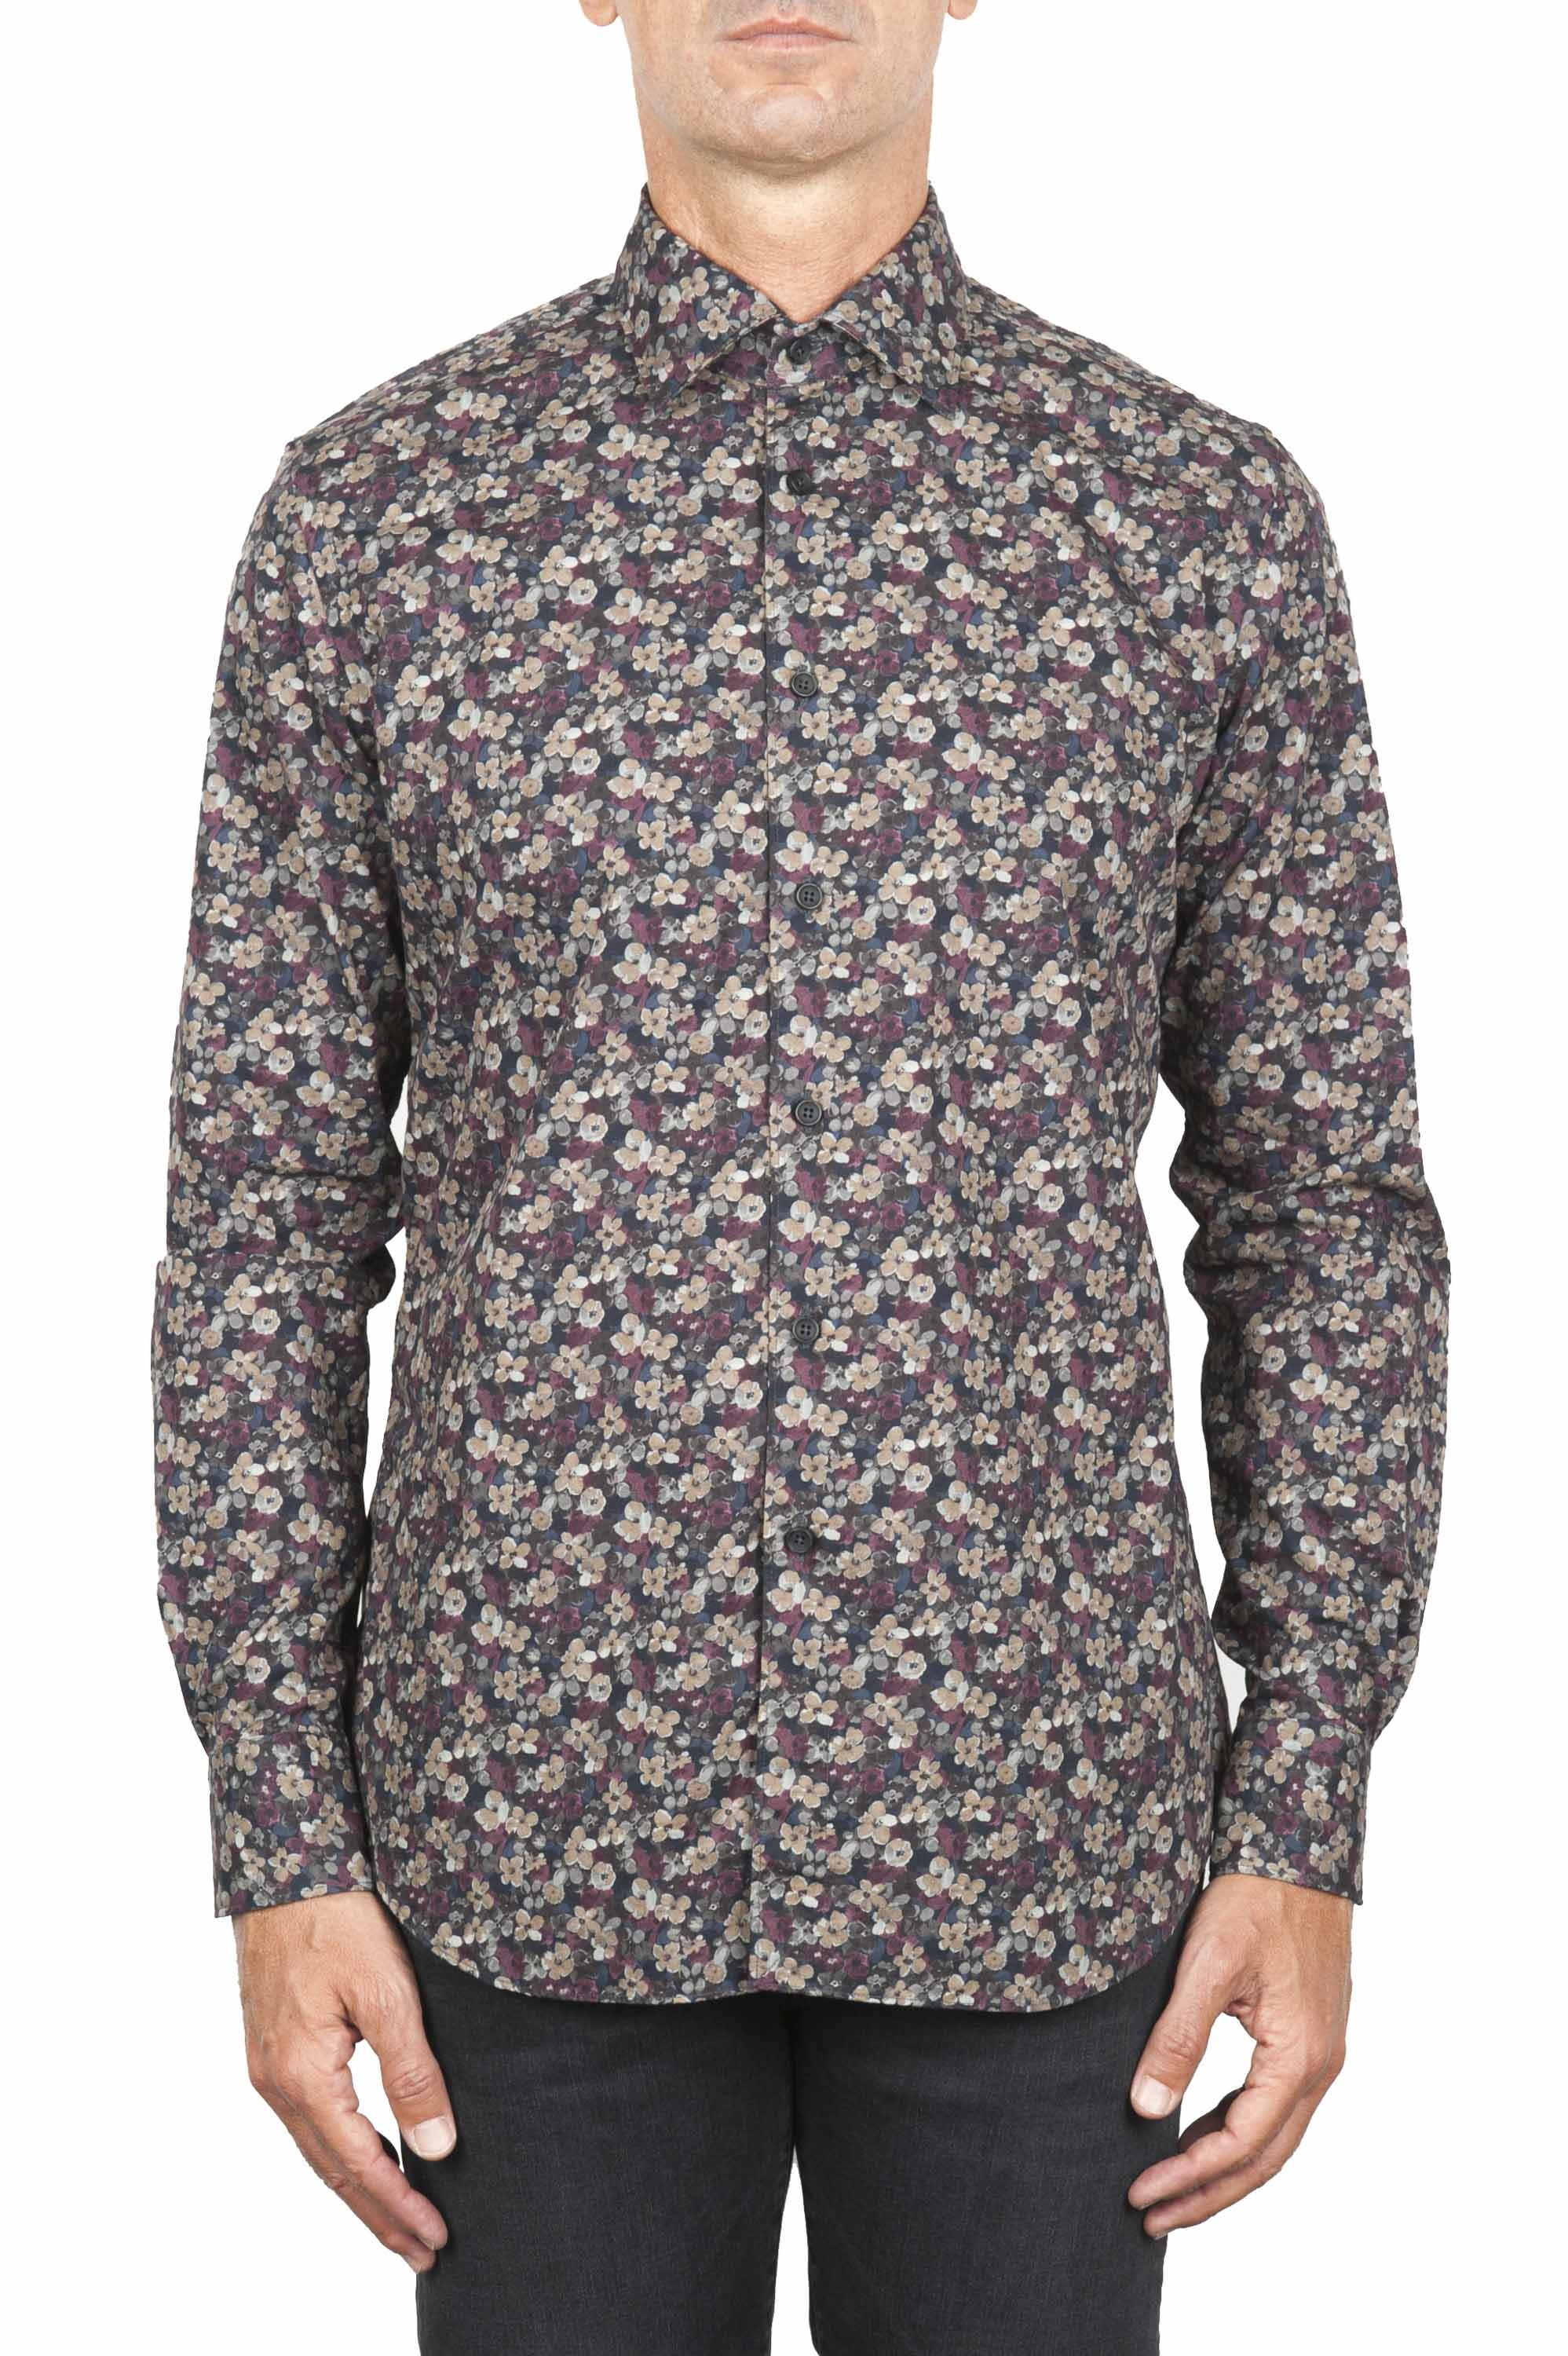 SBU 01821_19AW Floral printed pattern grey cotton shirt 01